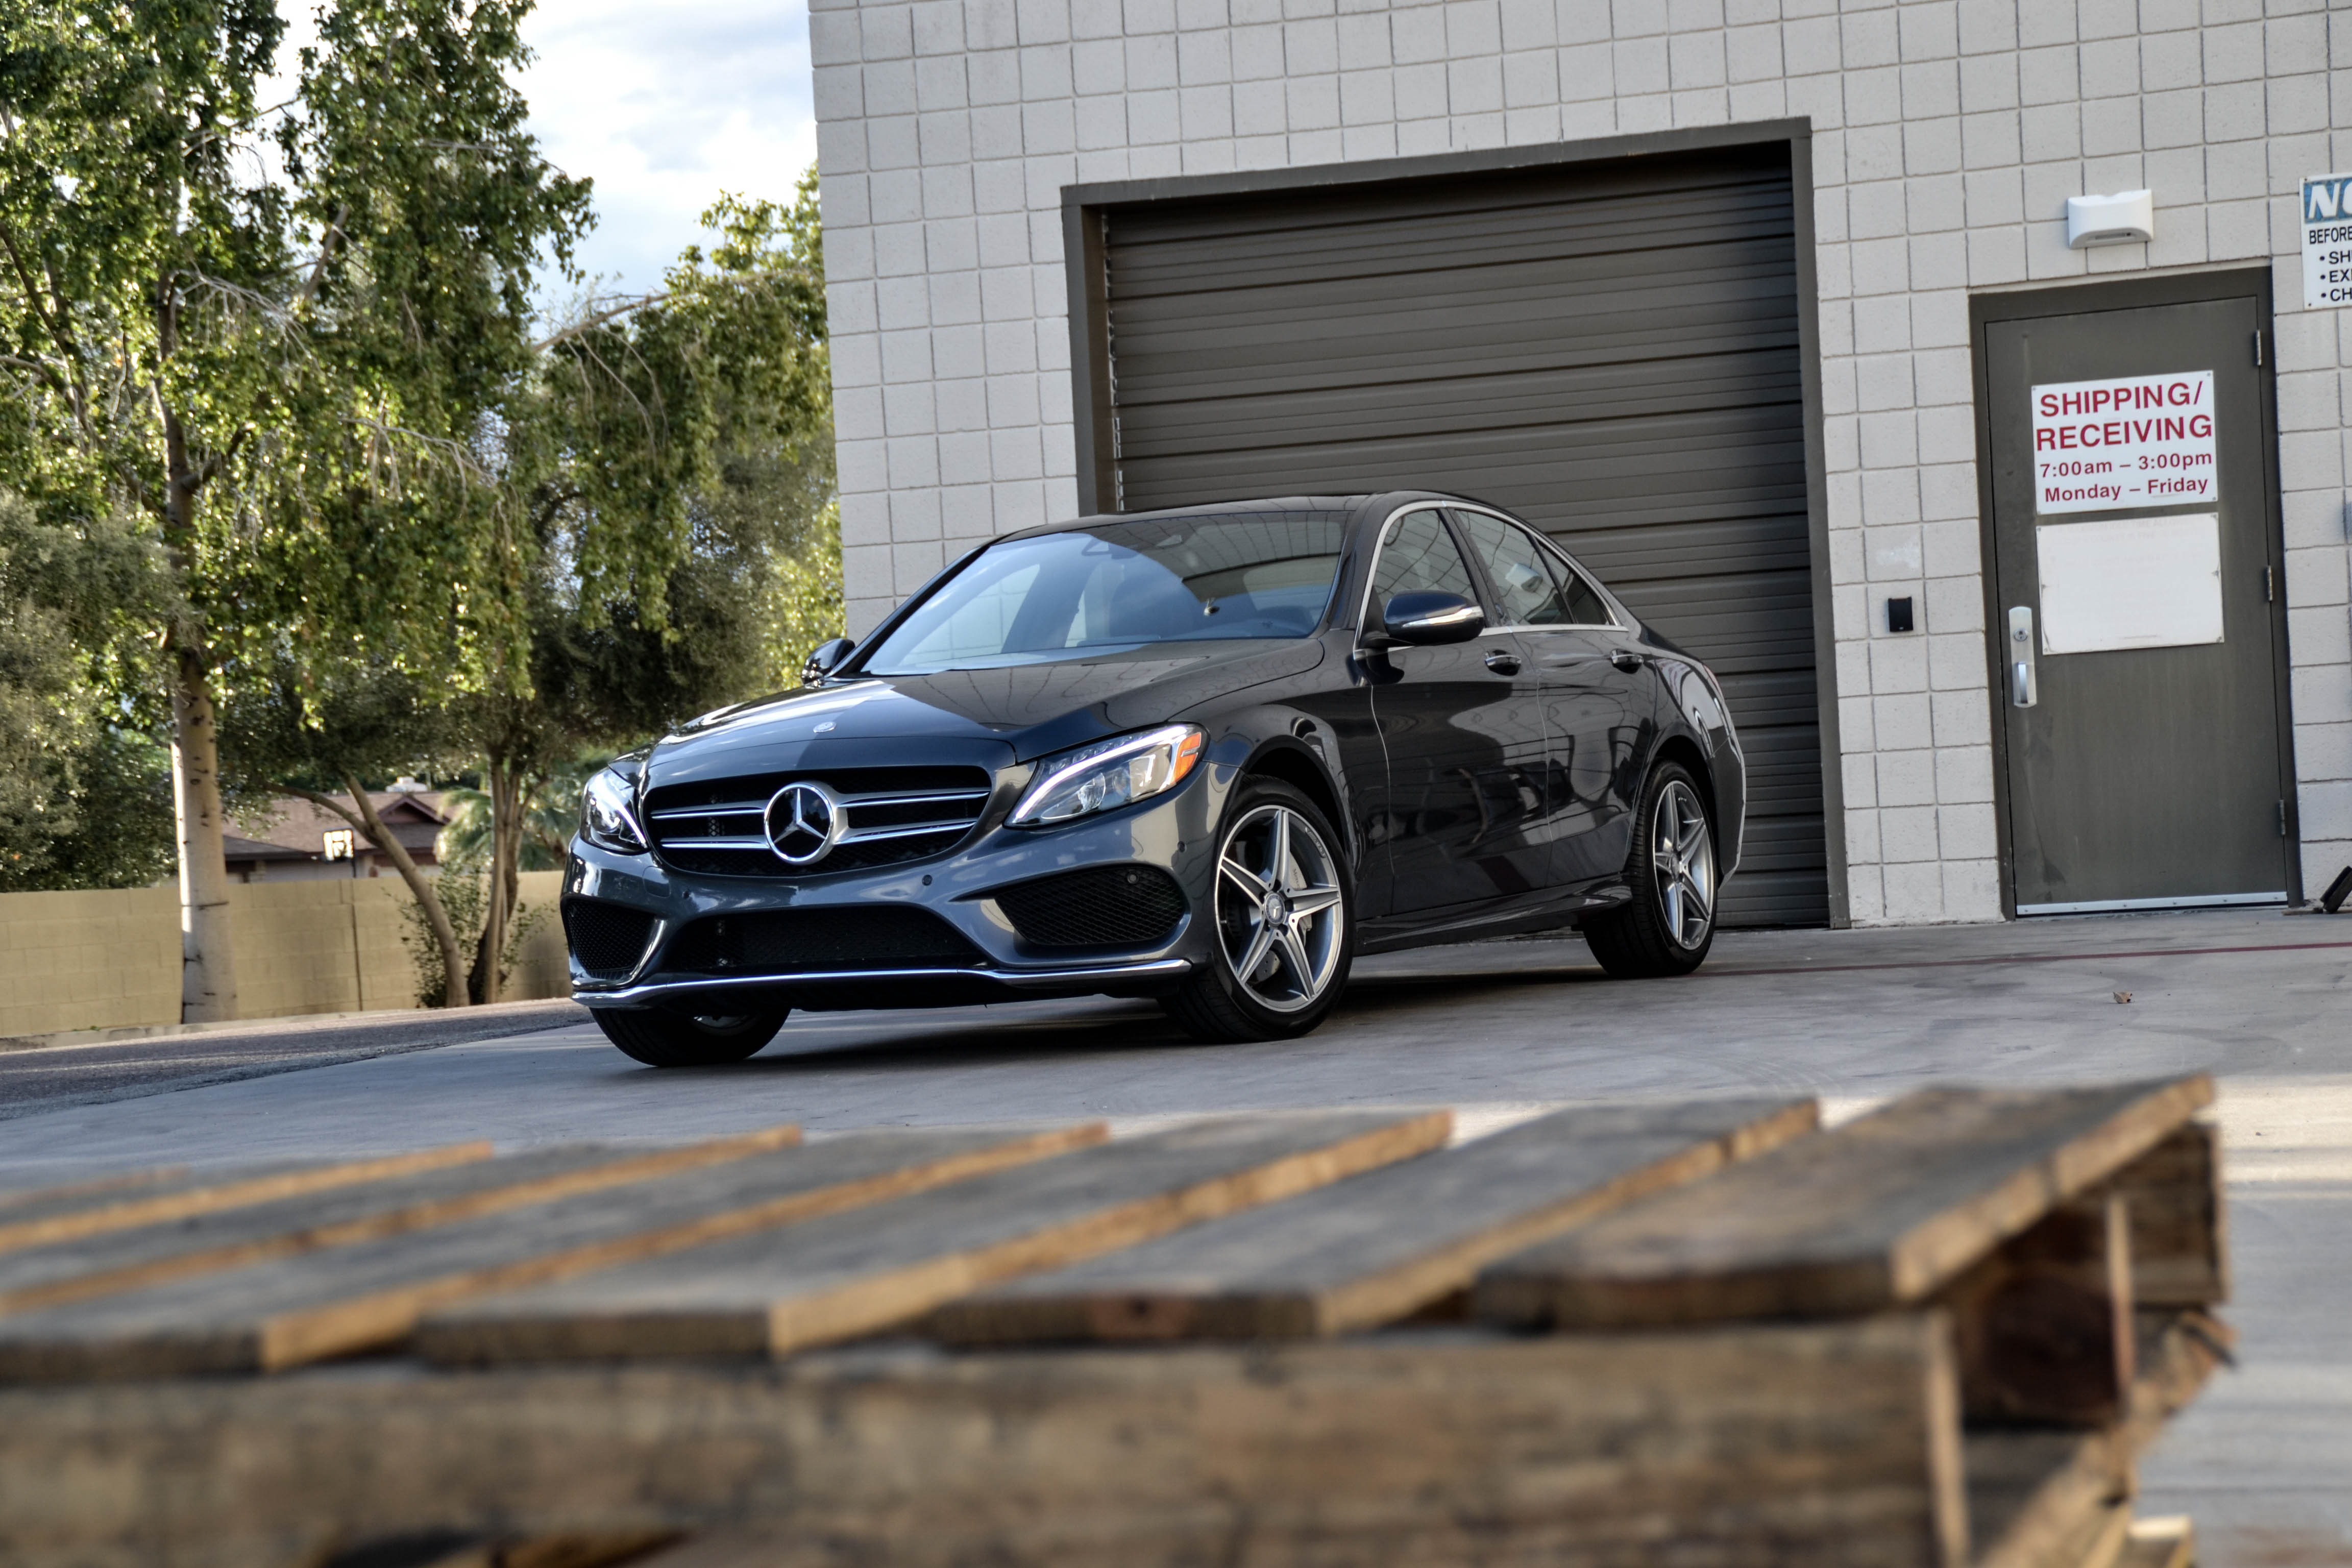 First Drive: 2015 Mercedes-Benz C400 W4 4MATIC - SIX SPEED ...